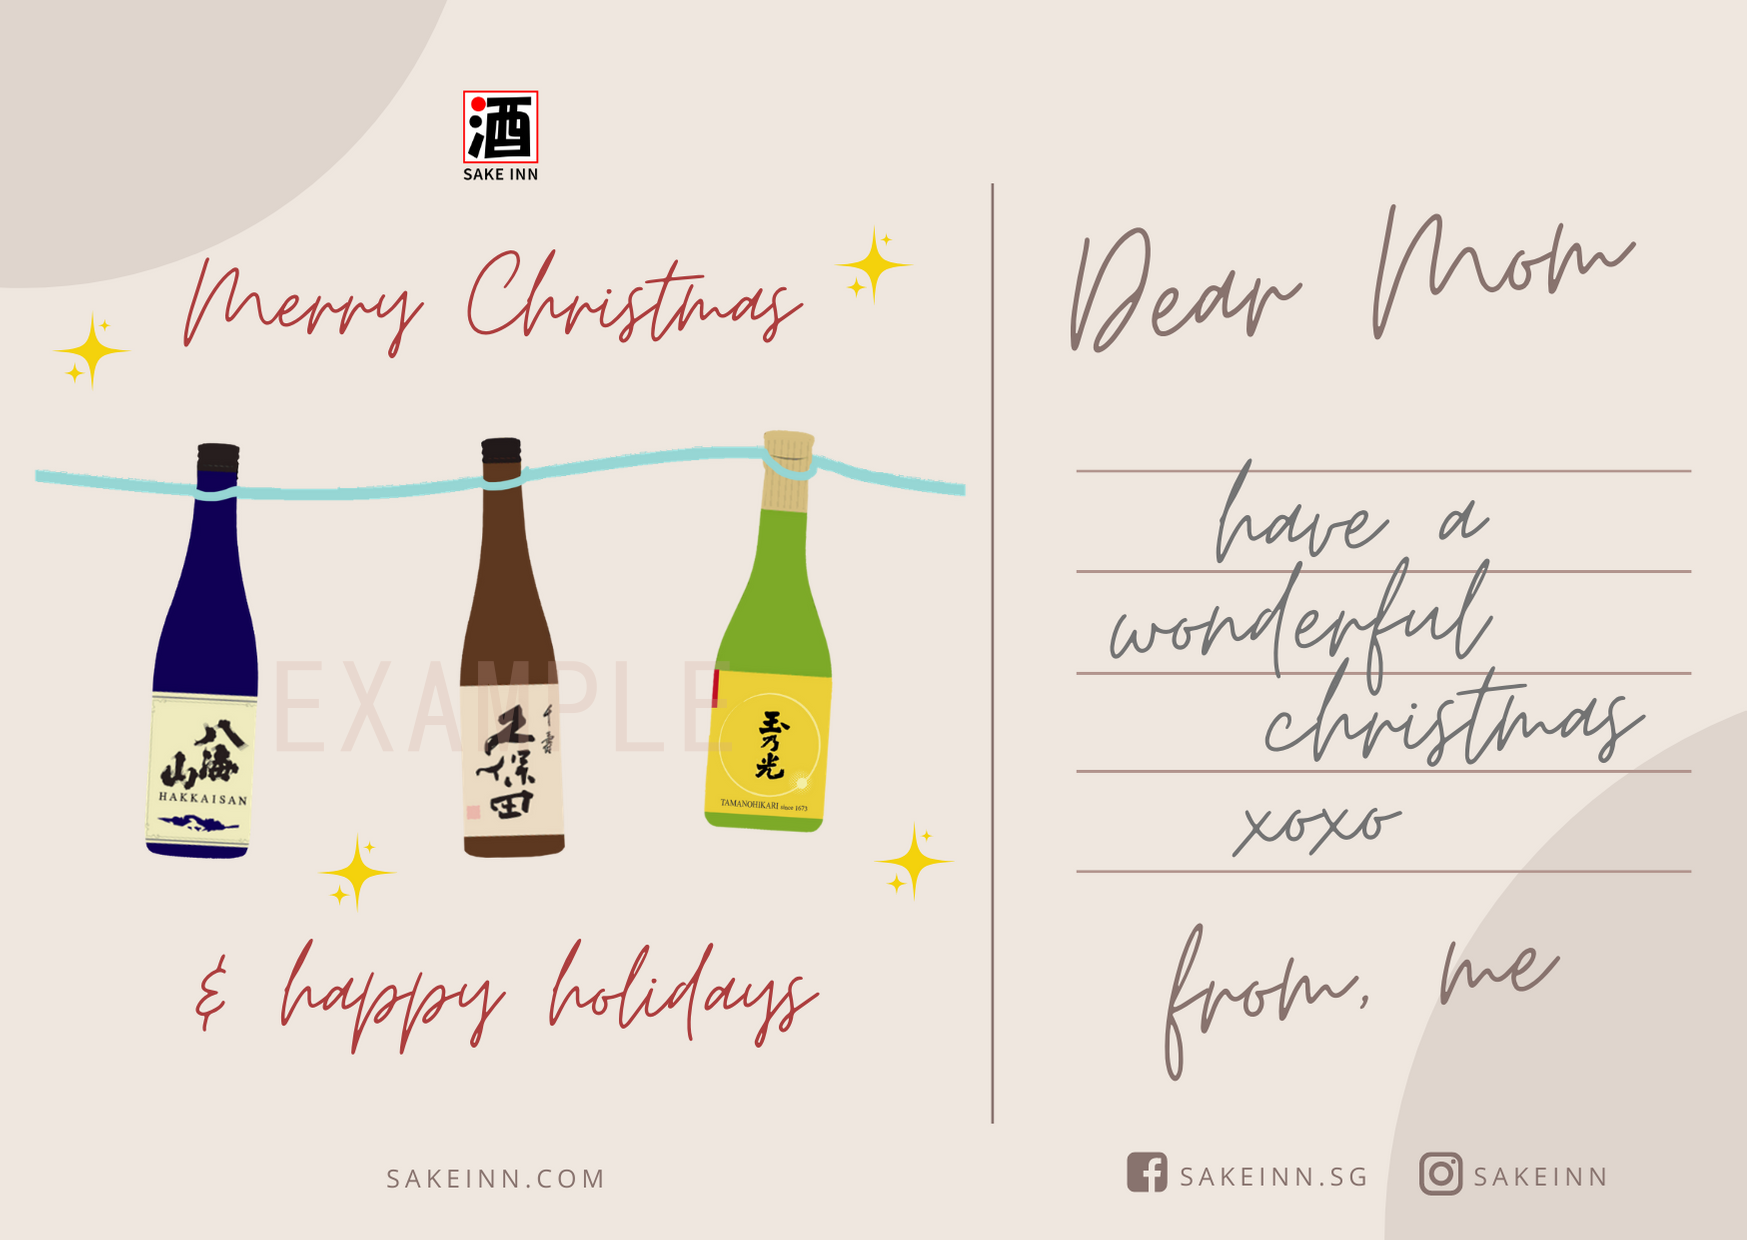 Sake Inn | Christmas Cards